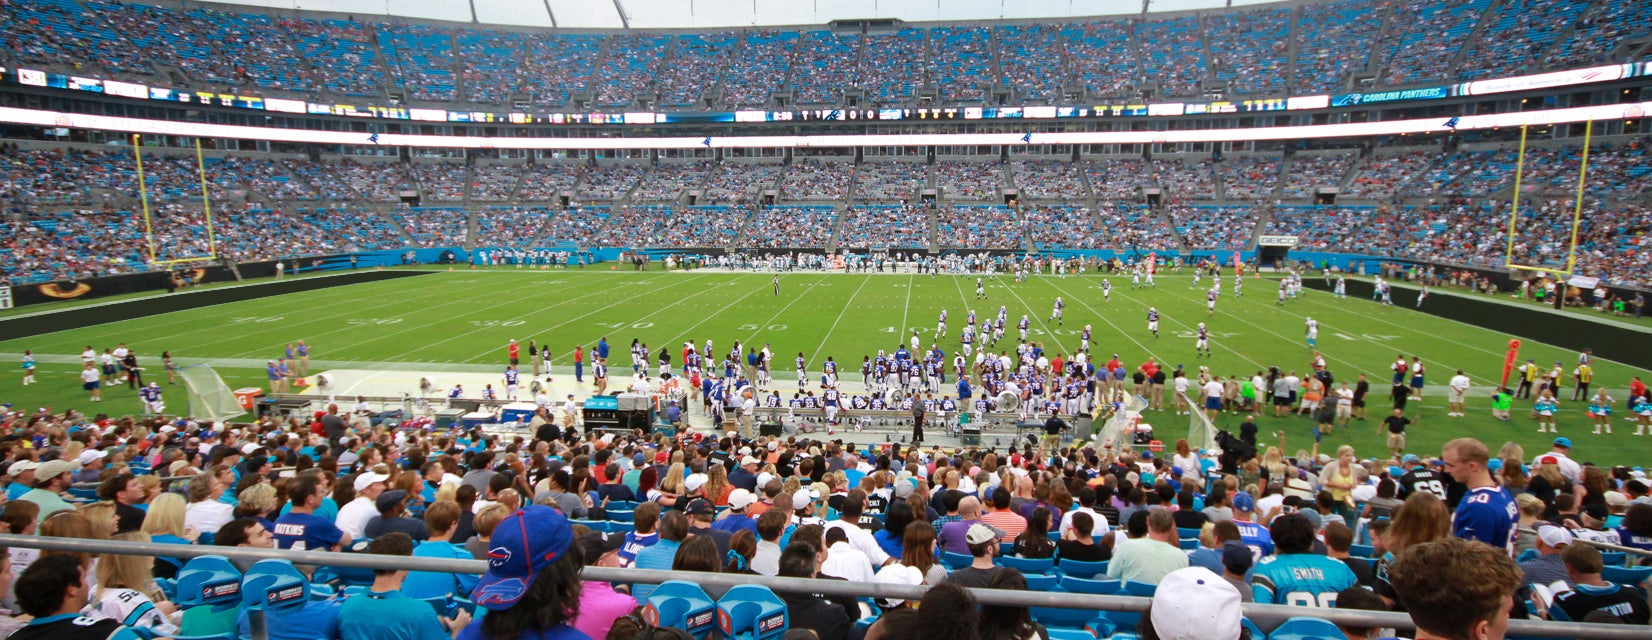 Seat view from Lower Premium